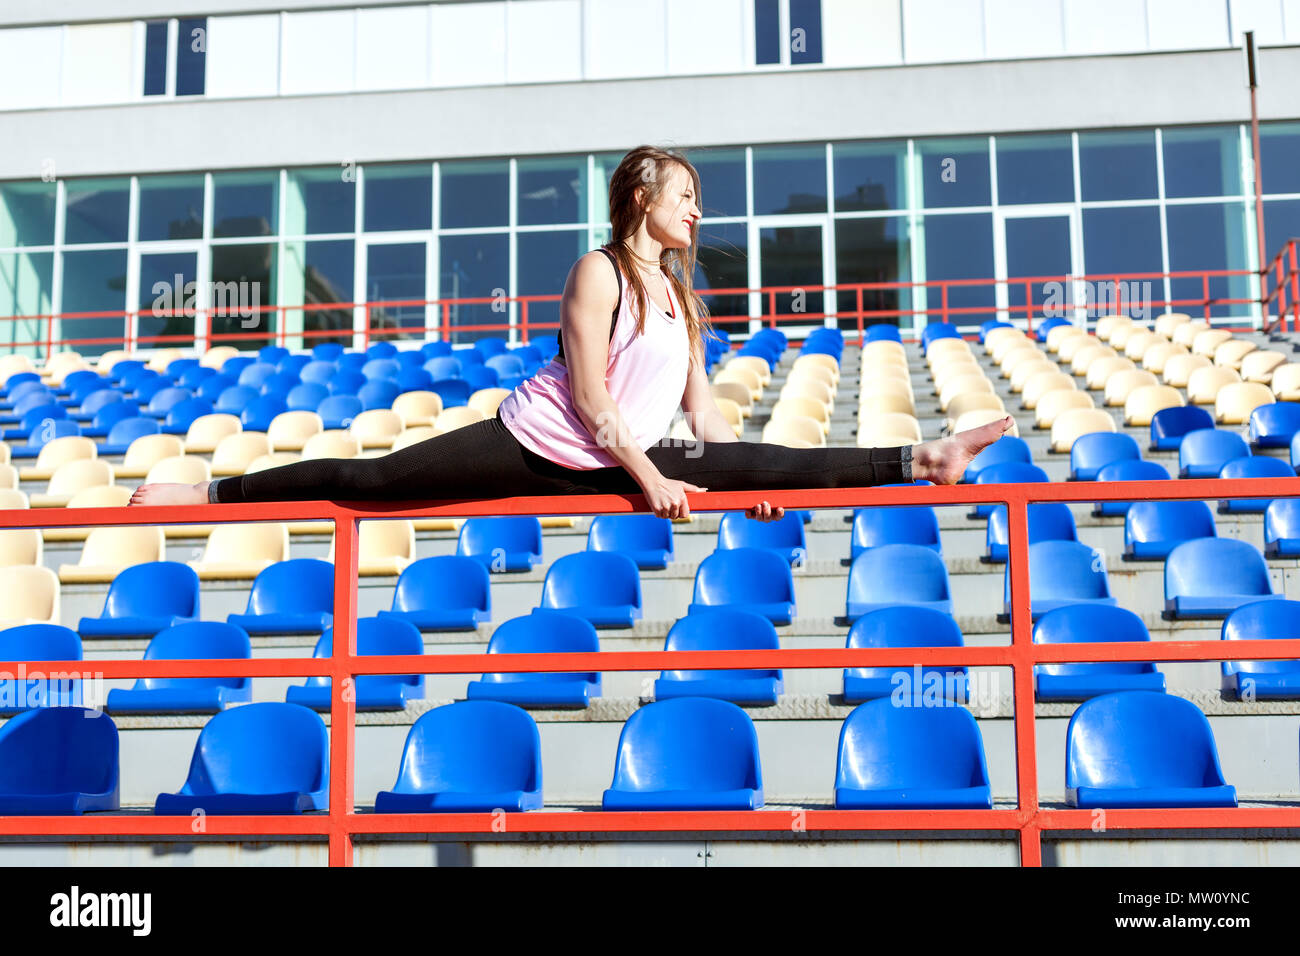 Young woman sitting on a twine on the fence of the stadium podium. - Stock Image